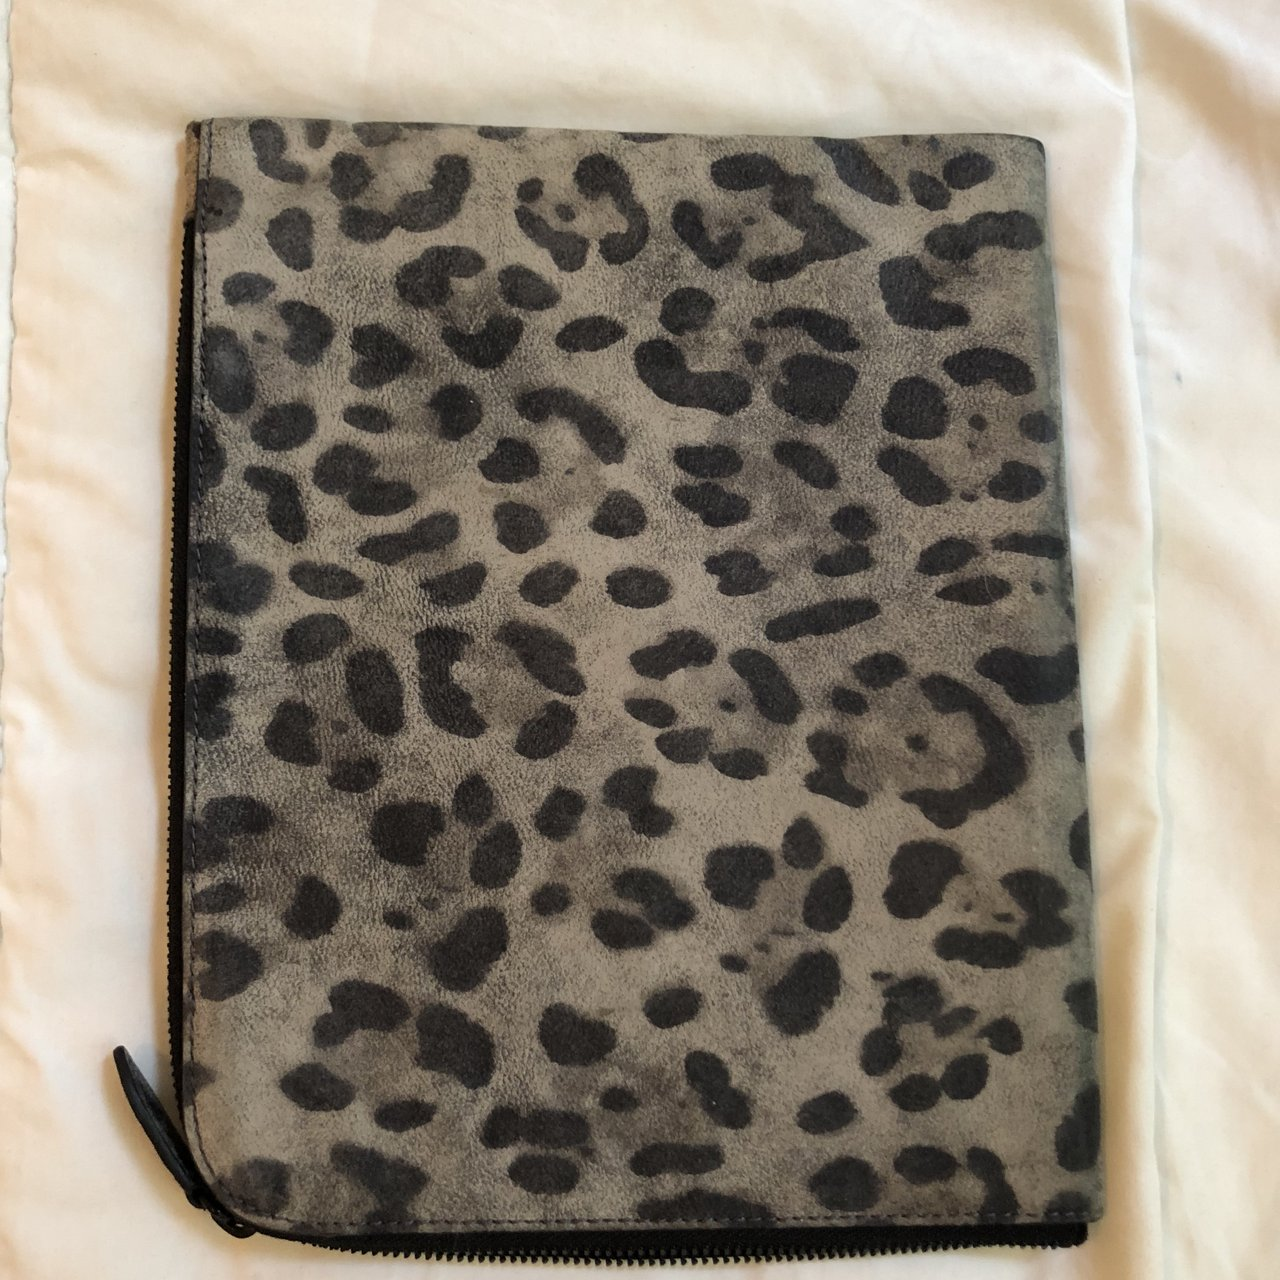 686bfa1a224f 3.1 Phillip Lim leopard case. I used it for my iPad but can - Depop